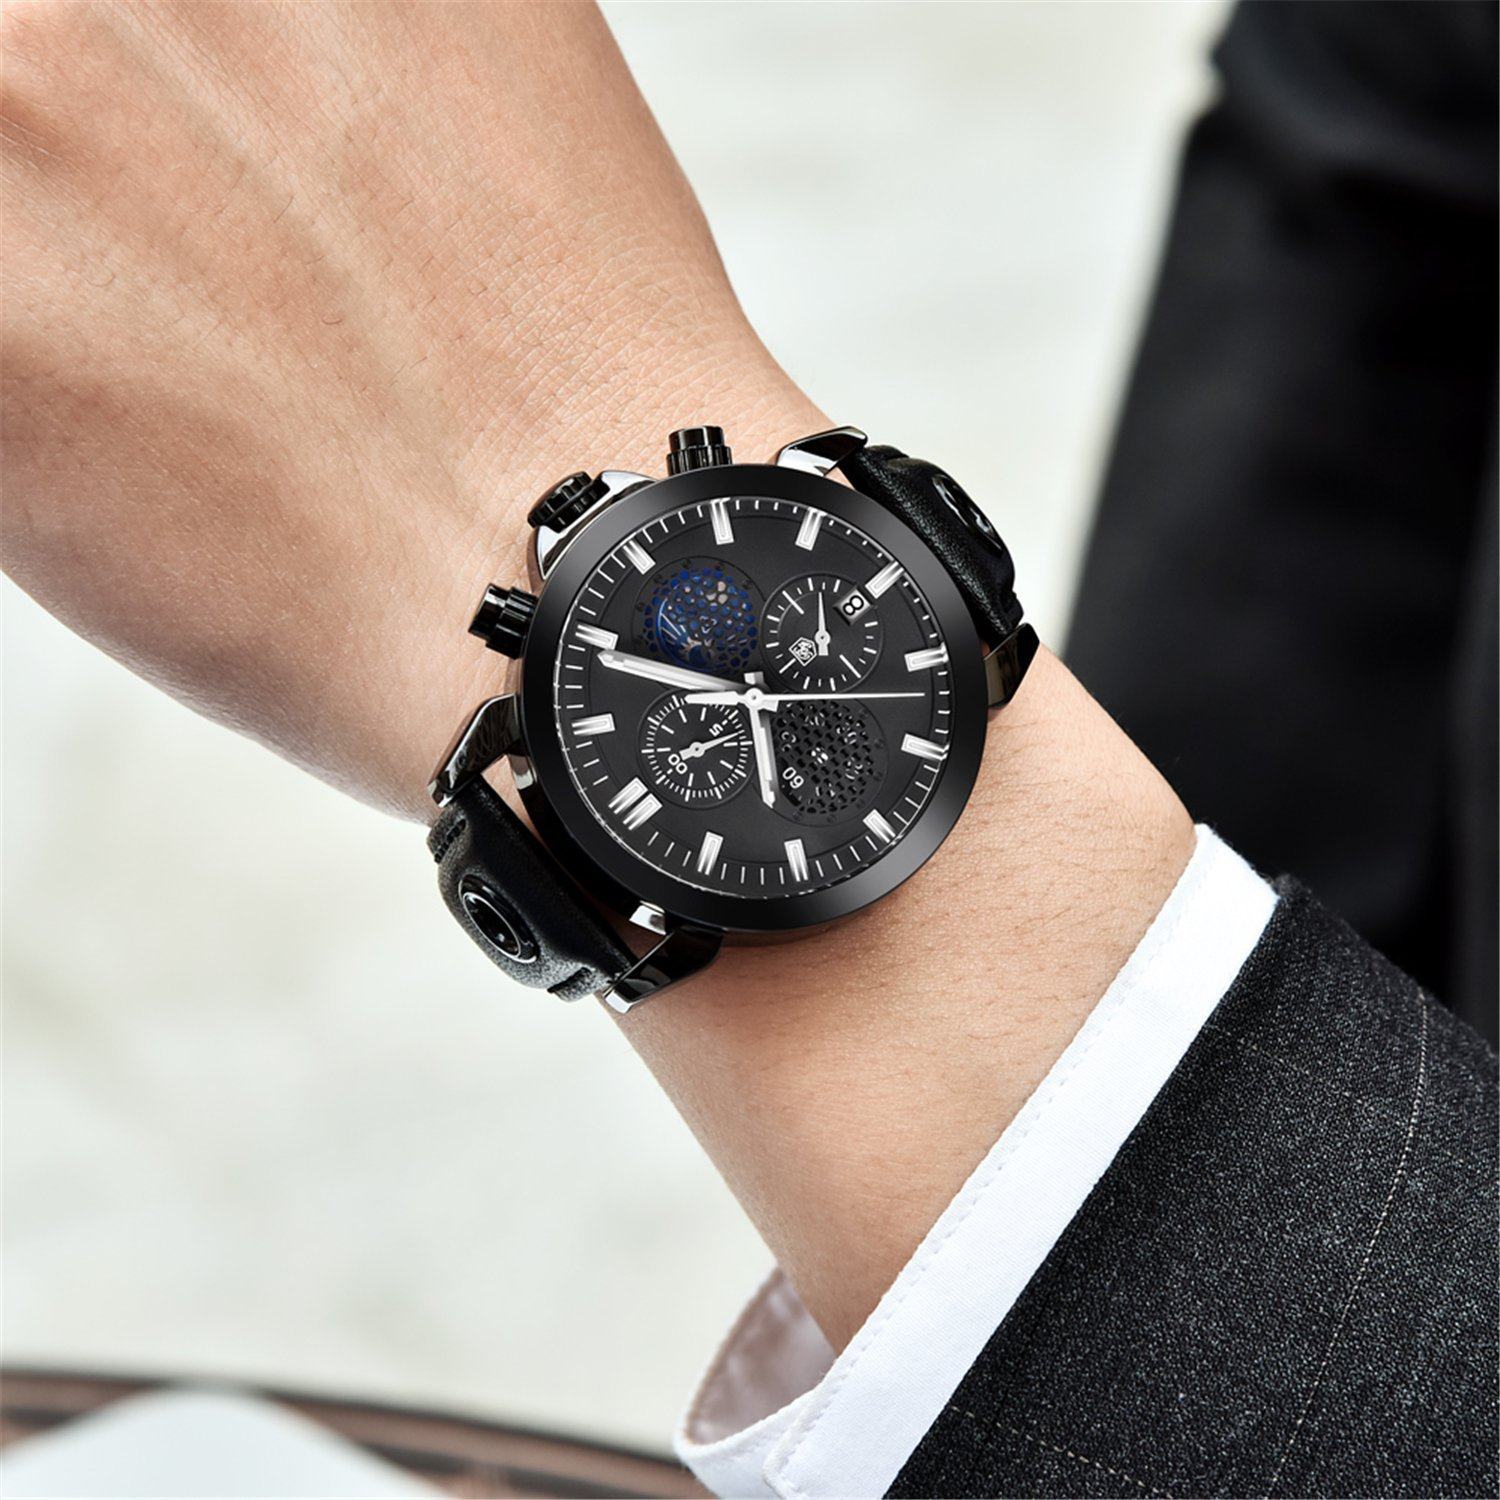 Amazon.com: Fashion MenS Watches Analog Quartz Wristwatch Waterproof Chronograph Auto Date Leather Stop Watch Business (black & red): Watches